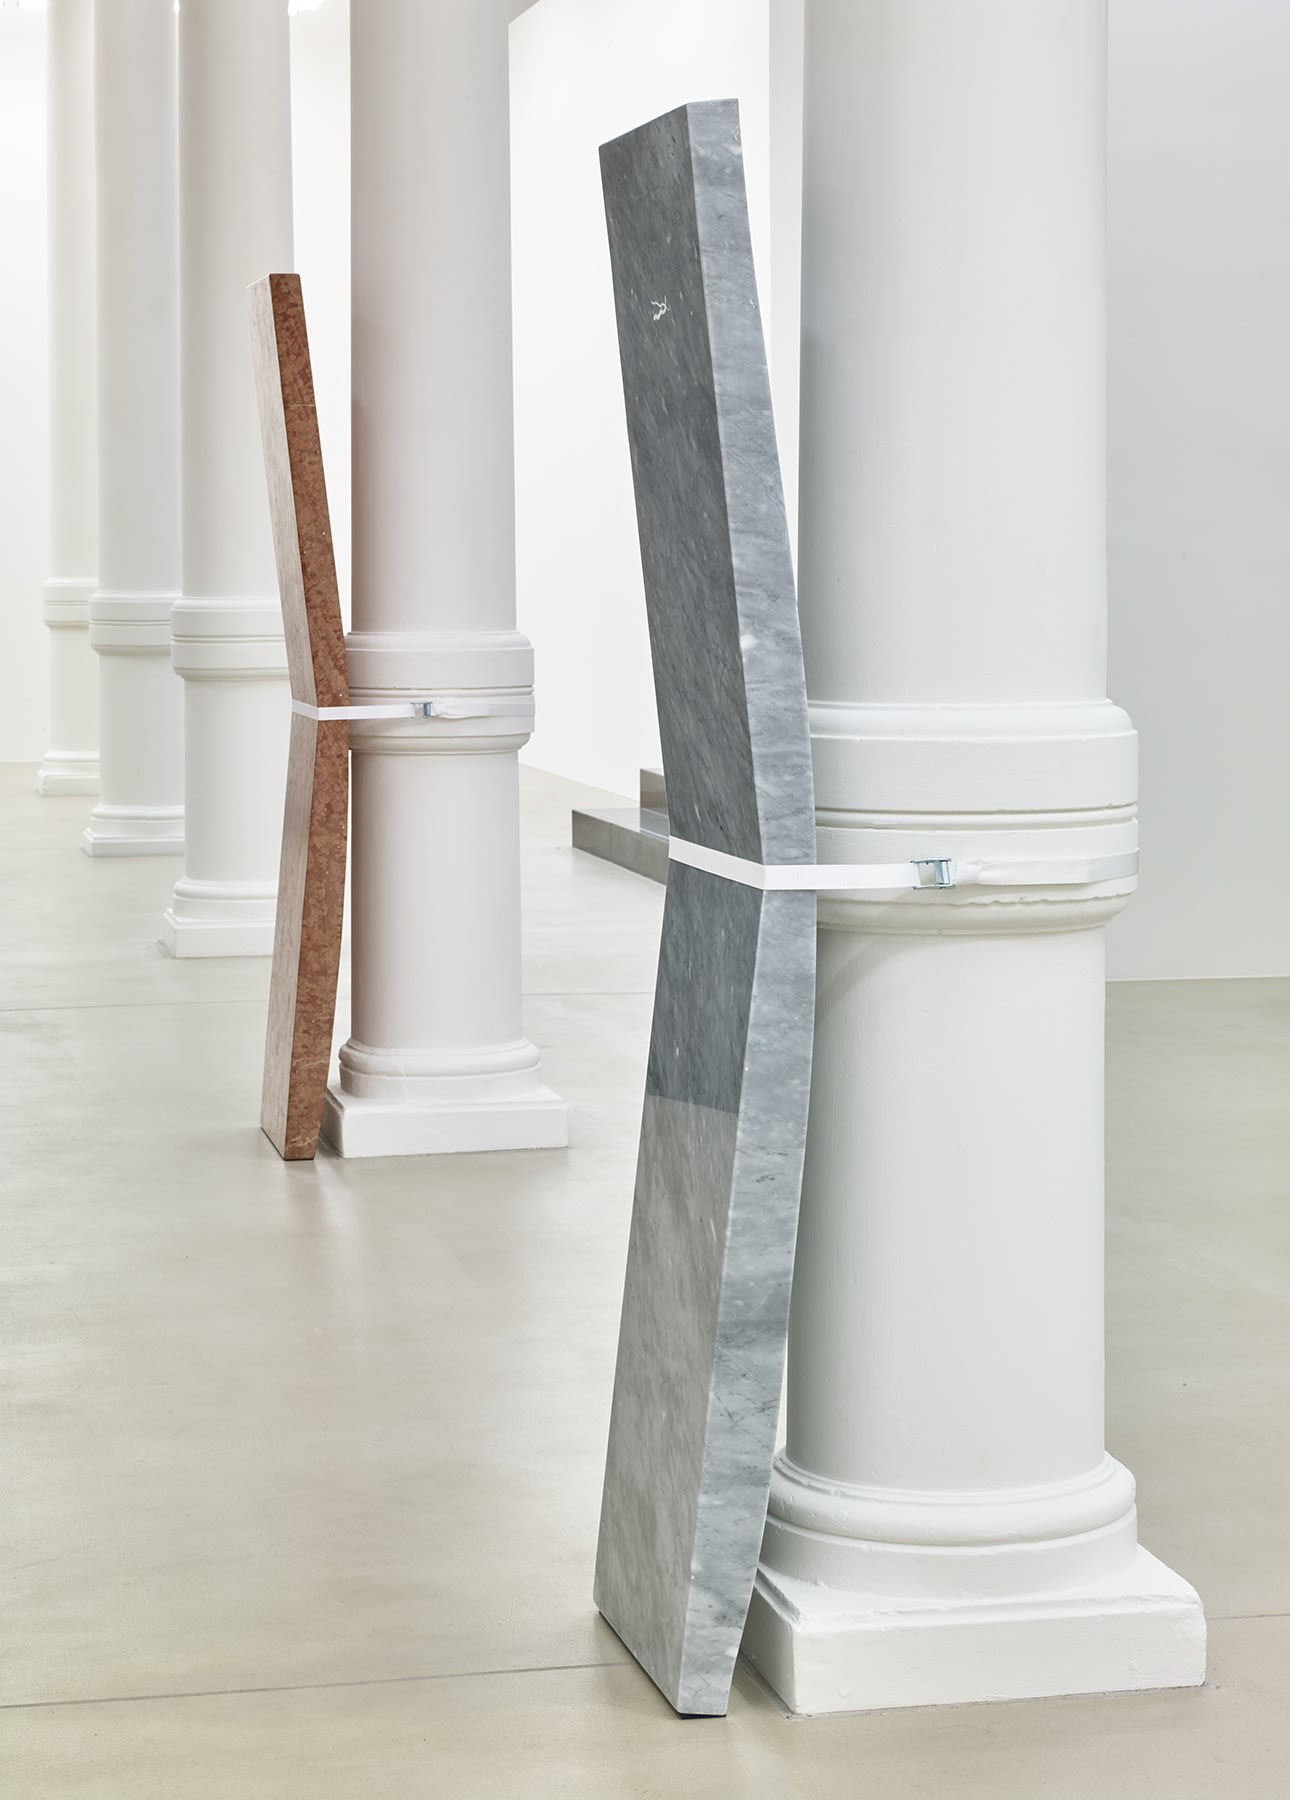 Installation view, slabs of stone strapped to pillars in a row.